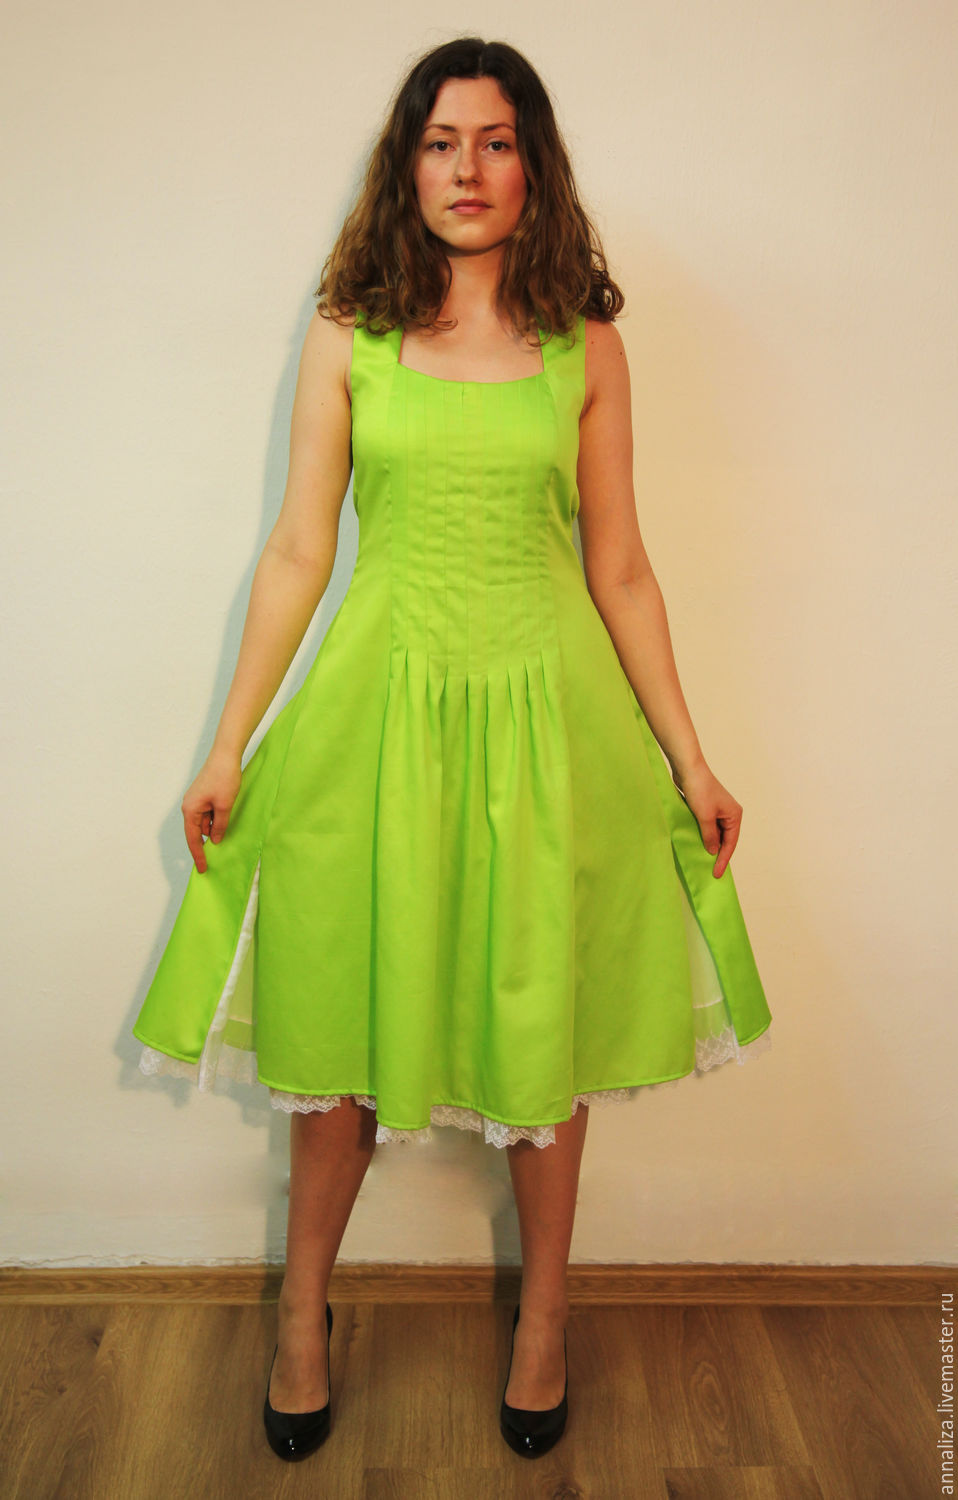 Women's summer sundress 'Apple Green', Sundresses, Moscow,  Фото №1